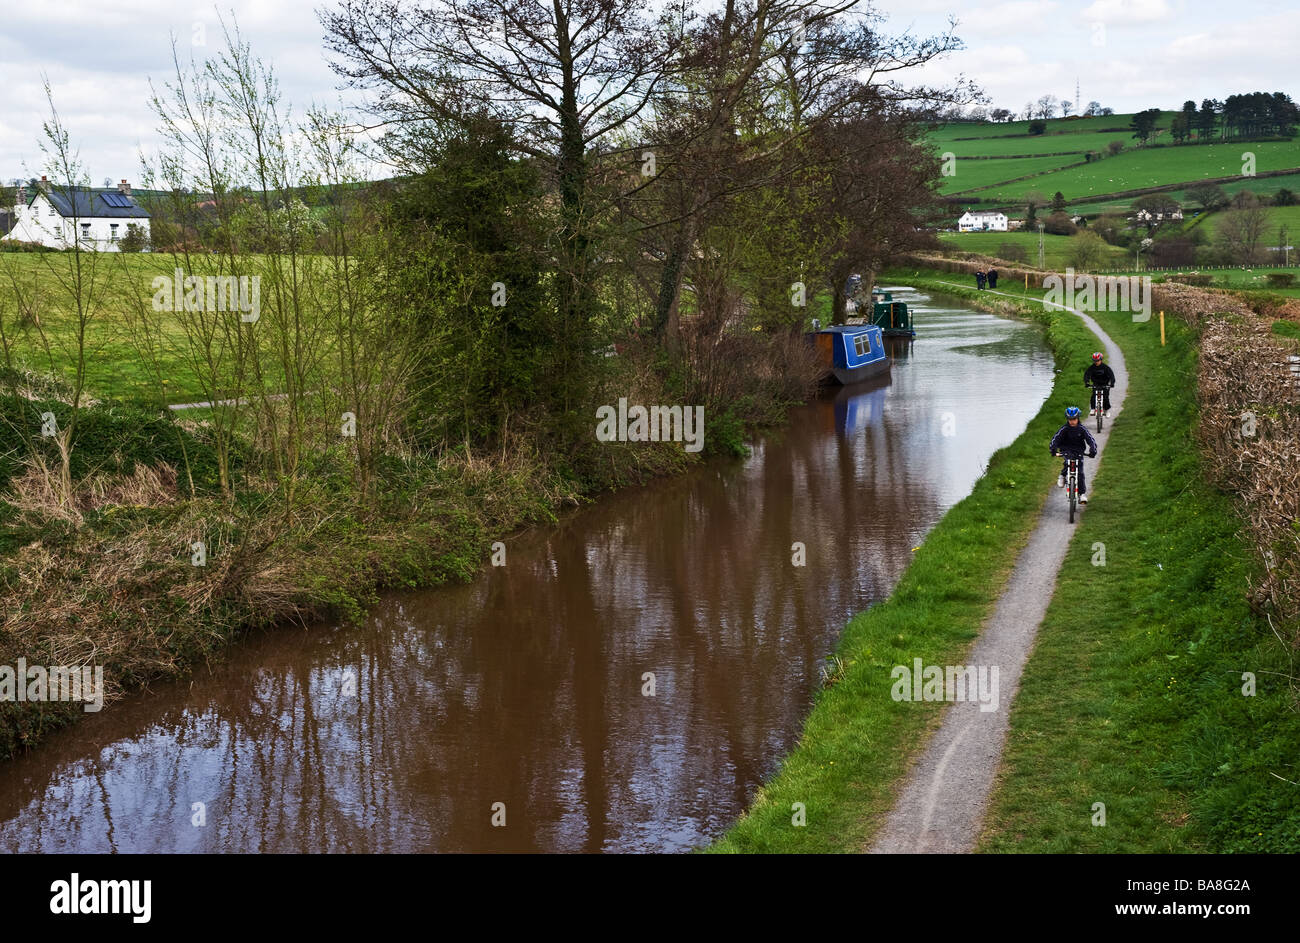 Cyclists on the towpath of the Monmouthshire Brecon Canal in Wales.  Photo by Gordon Scammell - Stock Image